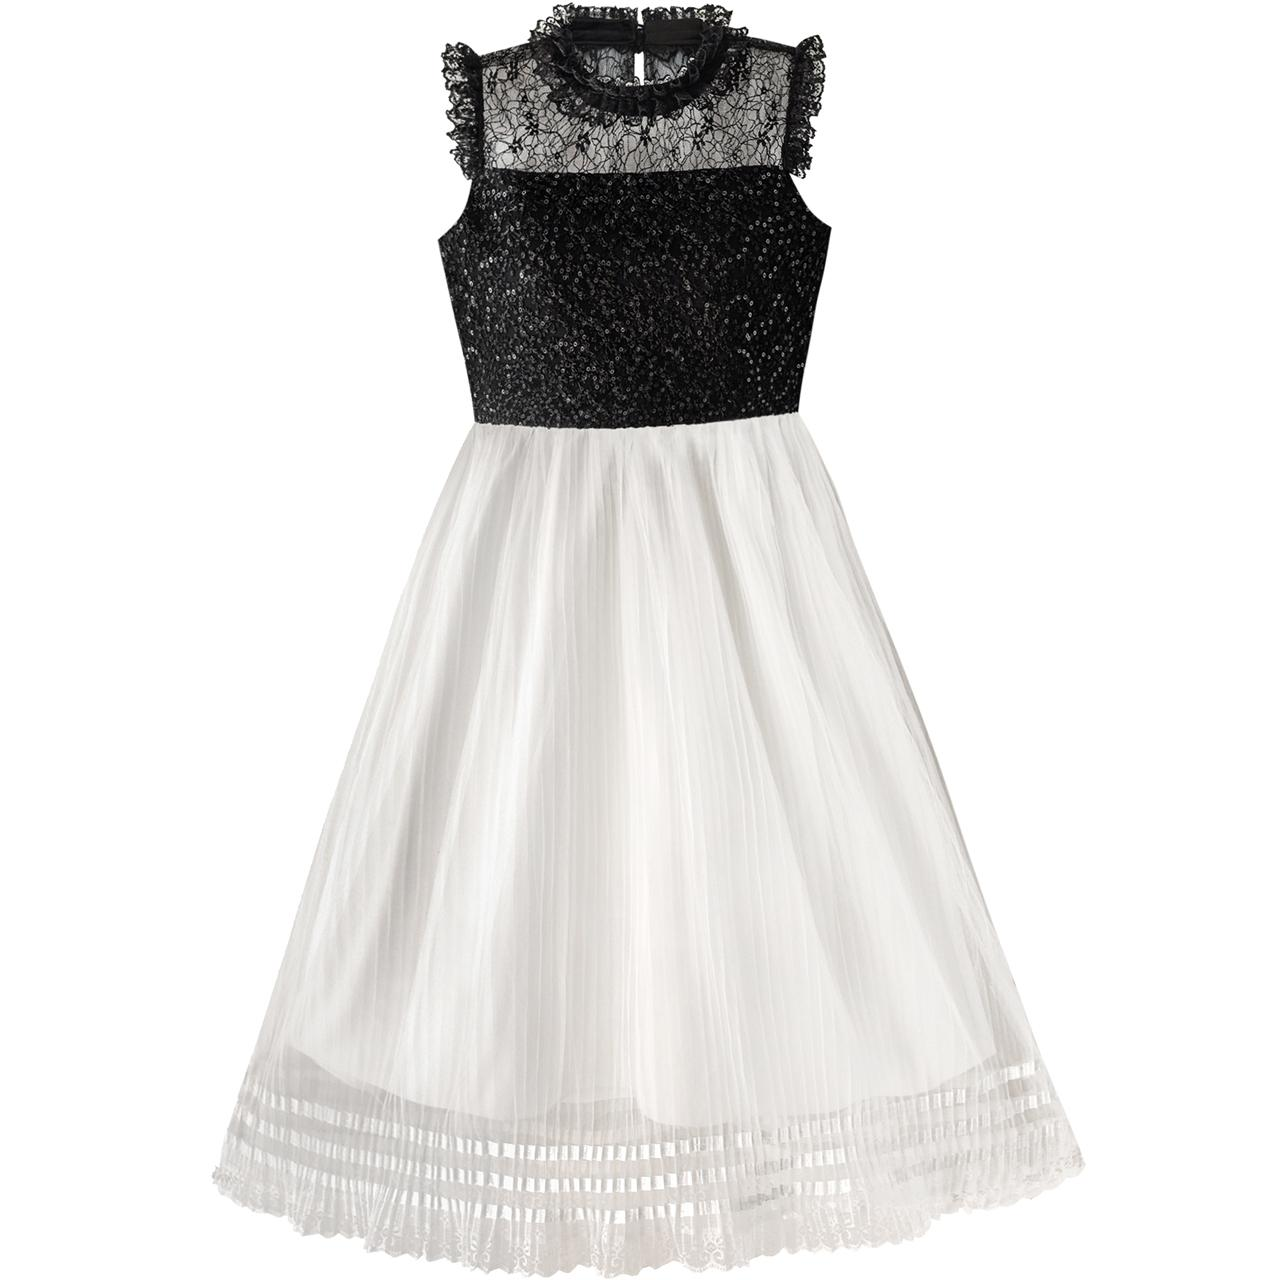 Sunny Fashion Girls Dress White and Black Pleated Lace Sequin 2018 Summer Princess Wedding Party Dresses Clothes Size 6-14 sunny fashion girls dress hi lo maxi chiffon lace polka dot necklace party 2018 summer princess wedding dresses size 7 14